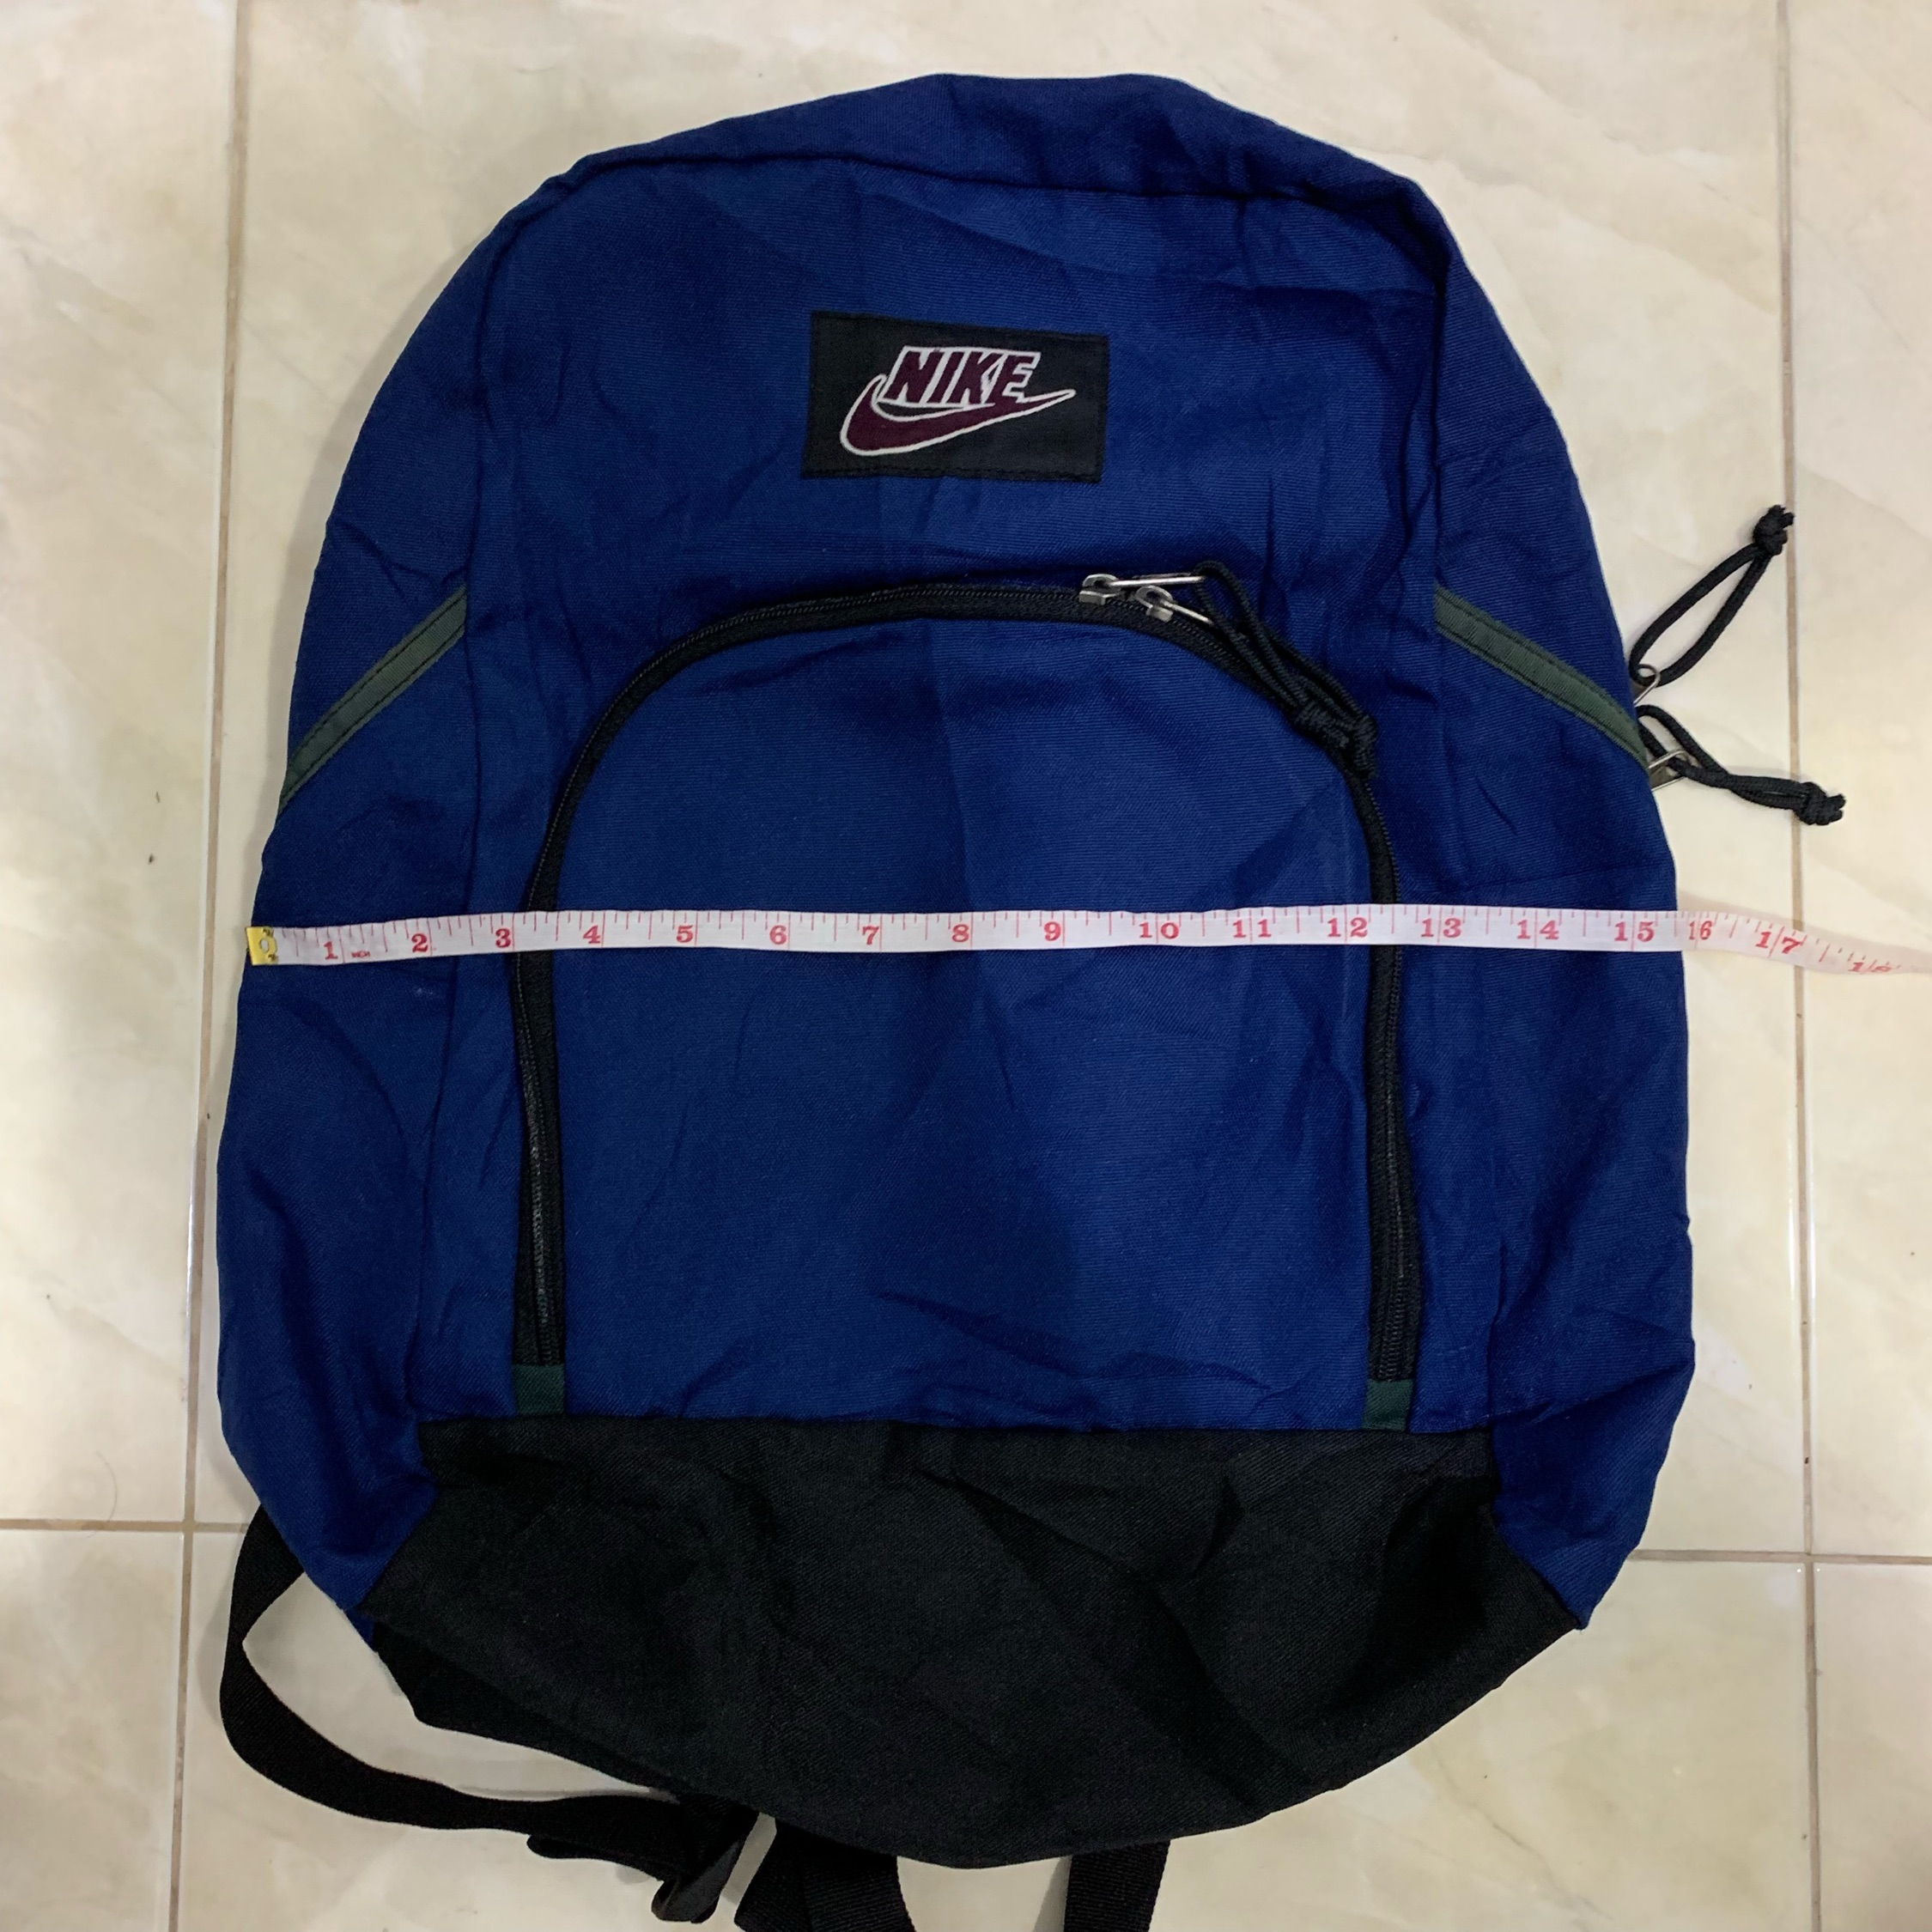 Vintage Nike Backpack